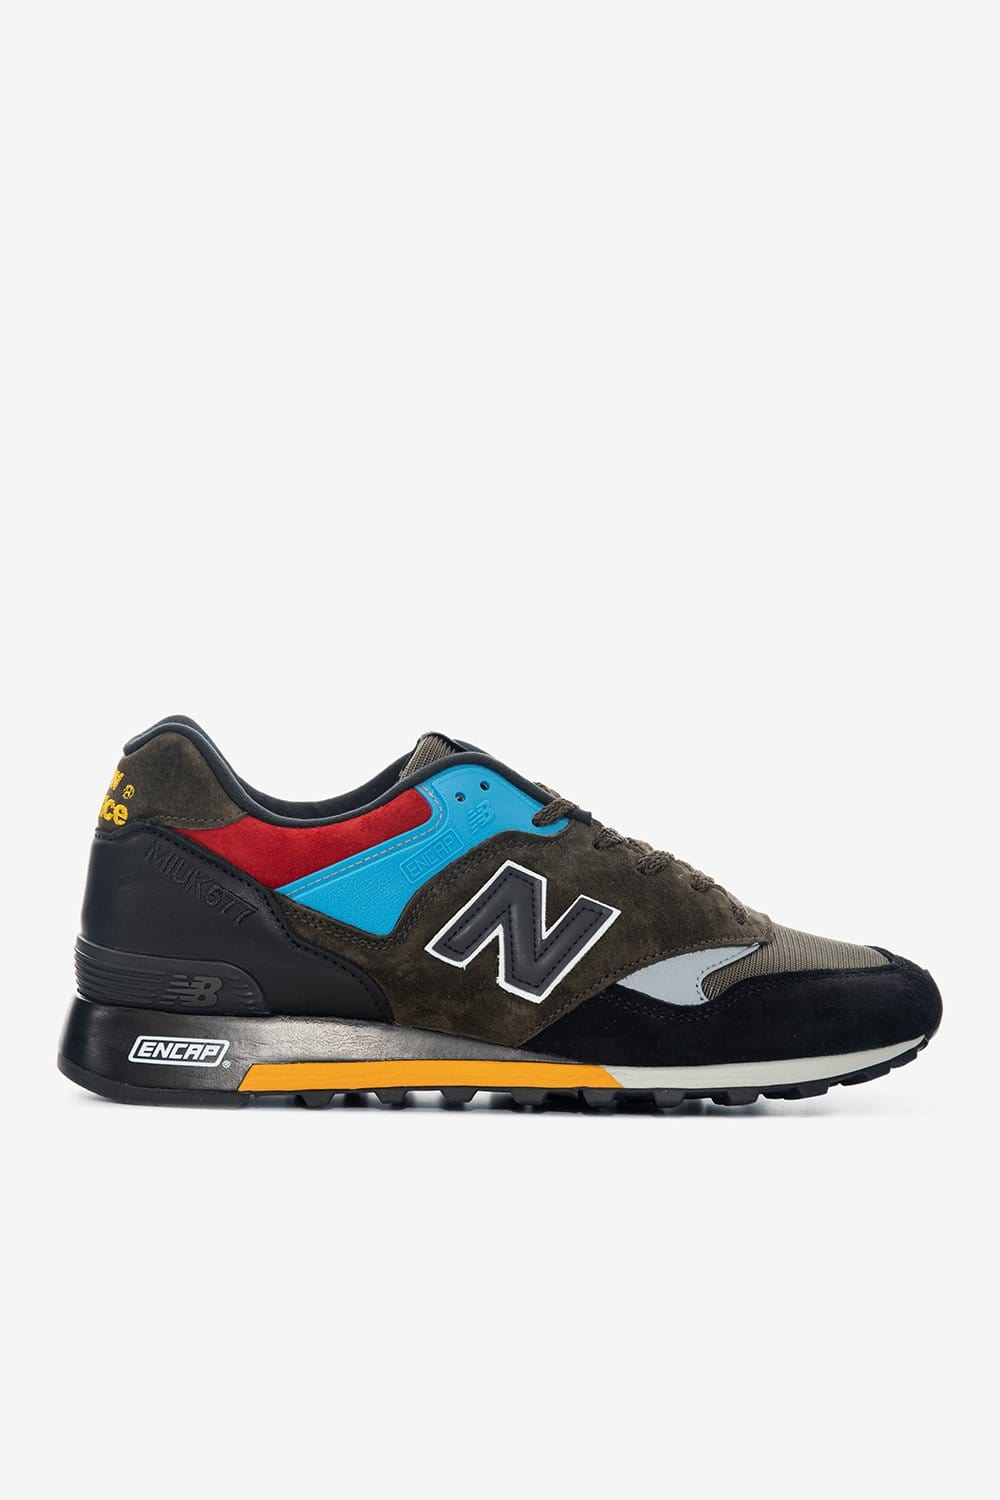 New Balance Footwear MADE 577 Urban Peak